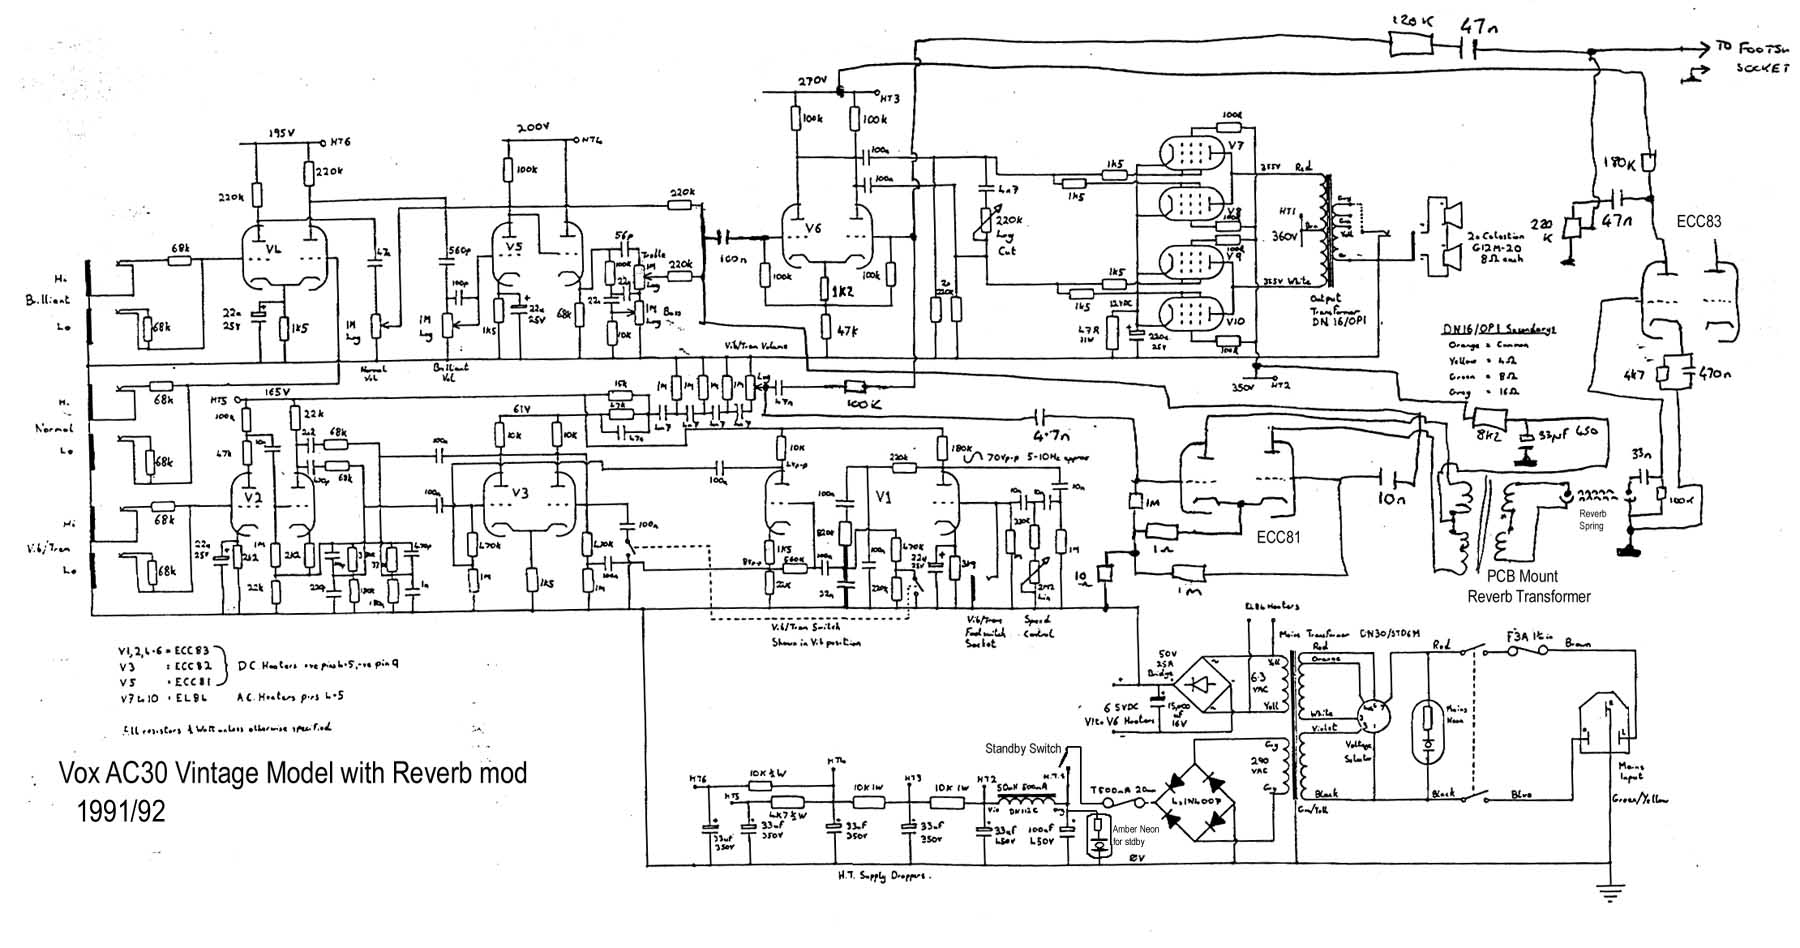 Mercedes 450sl Wiring Diagram Together With 1973 Camaro Wiring Diagram